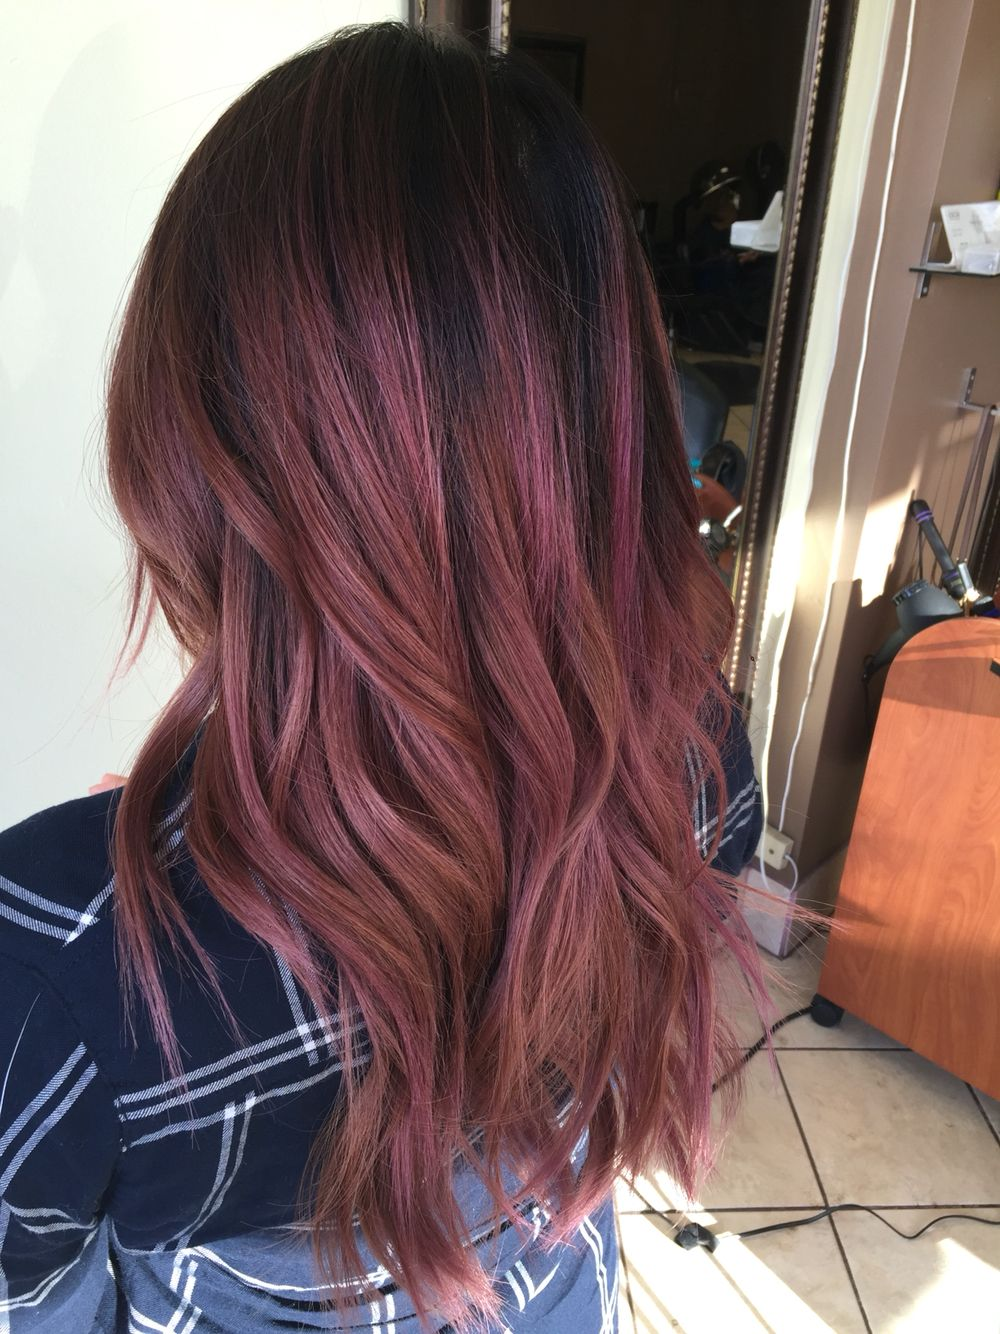 dark rose hair color balayage ombre hair pinterest cabello rojizo marr n oscuro y. Black Bedroom Furniture Sets. Home Design Ideas